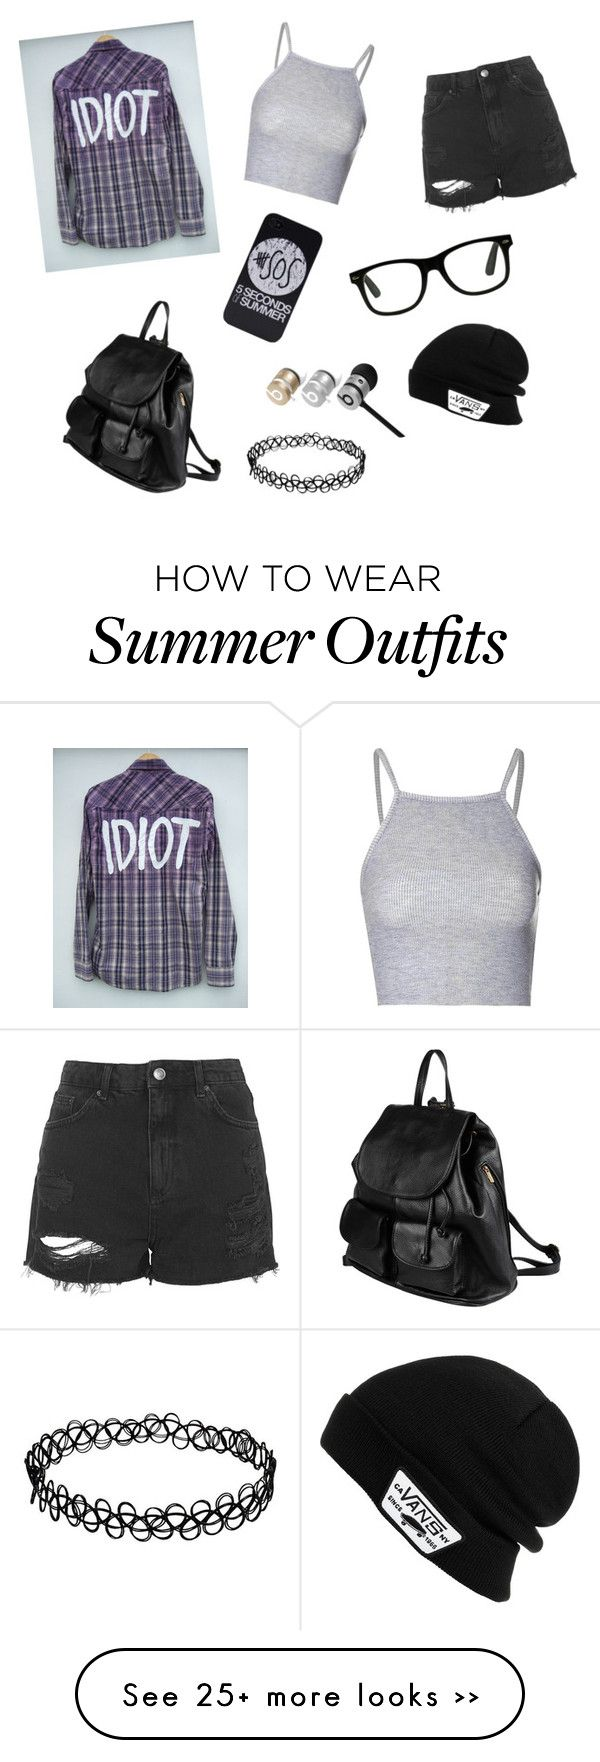 """5sos concert outfit"" by zoey-5sos on Polyvore featuring Glamorous, Topshop, PARENTESI, Beats by Dr. Dre and Vans"